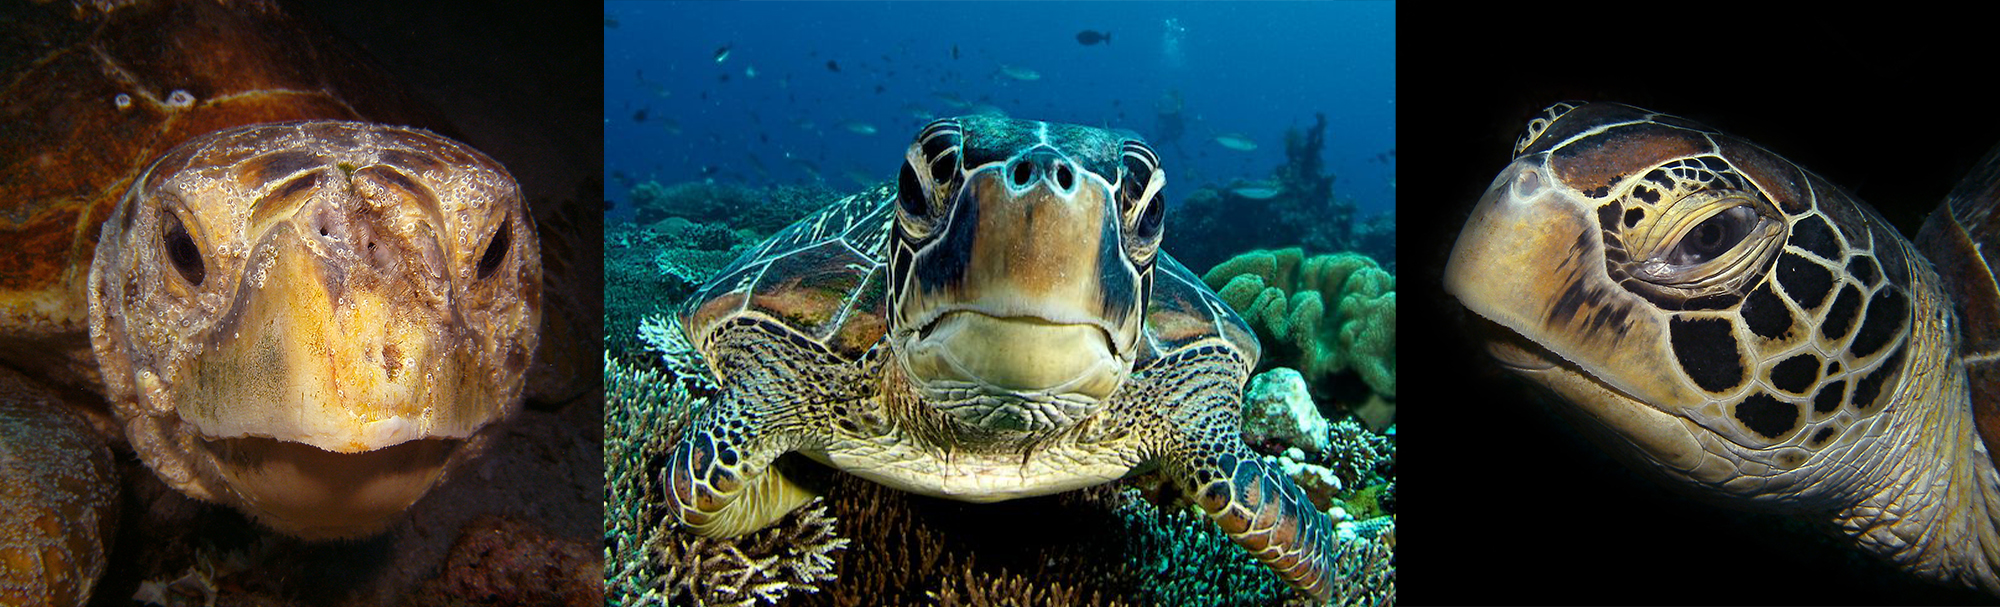 green sea turtle essay Npsgov 5 hawaiian green sea turtle credit: claire fackler, noaa national marine sanctuaries some species, such as loggerhead, green, hawksbill, and.